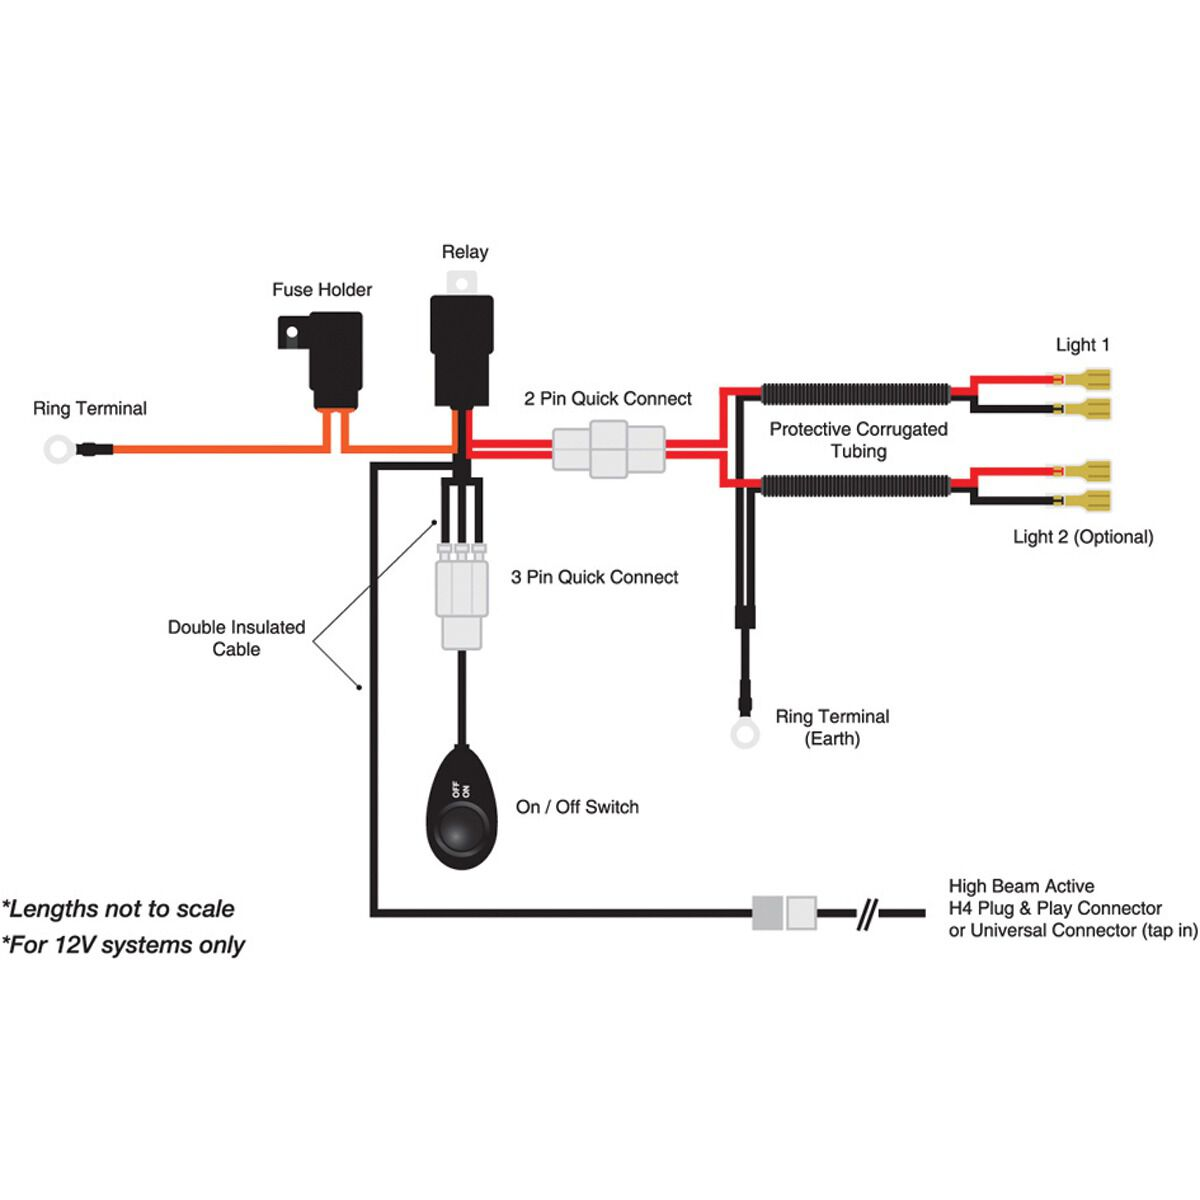 Driving Lights Home Narva Wiring Diagram Driving Light Wiring ... on